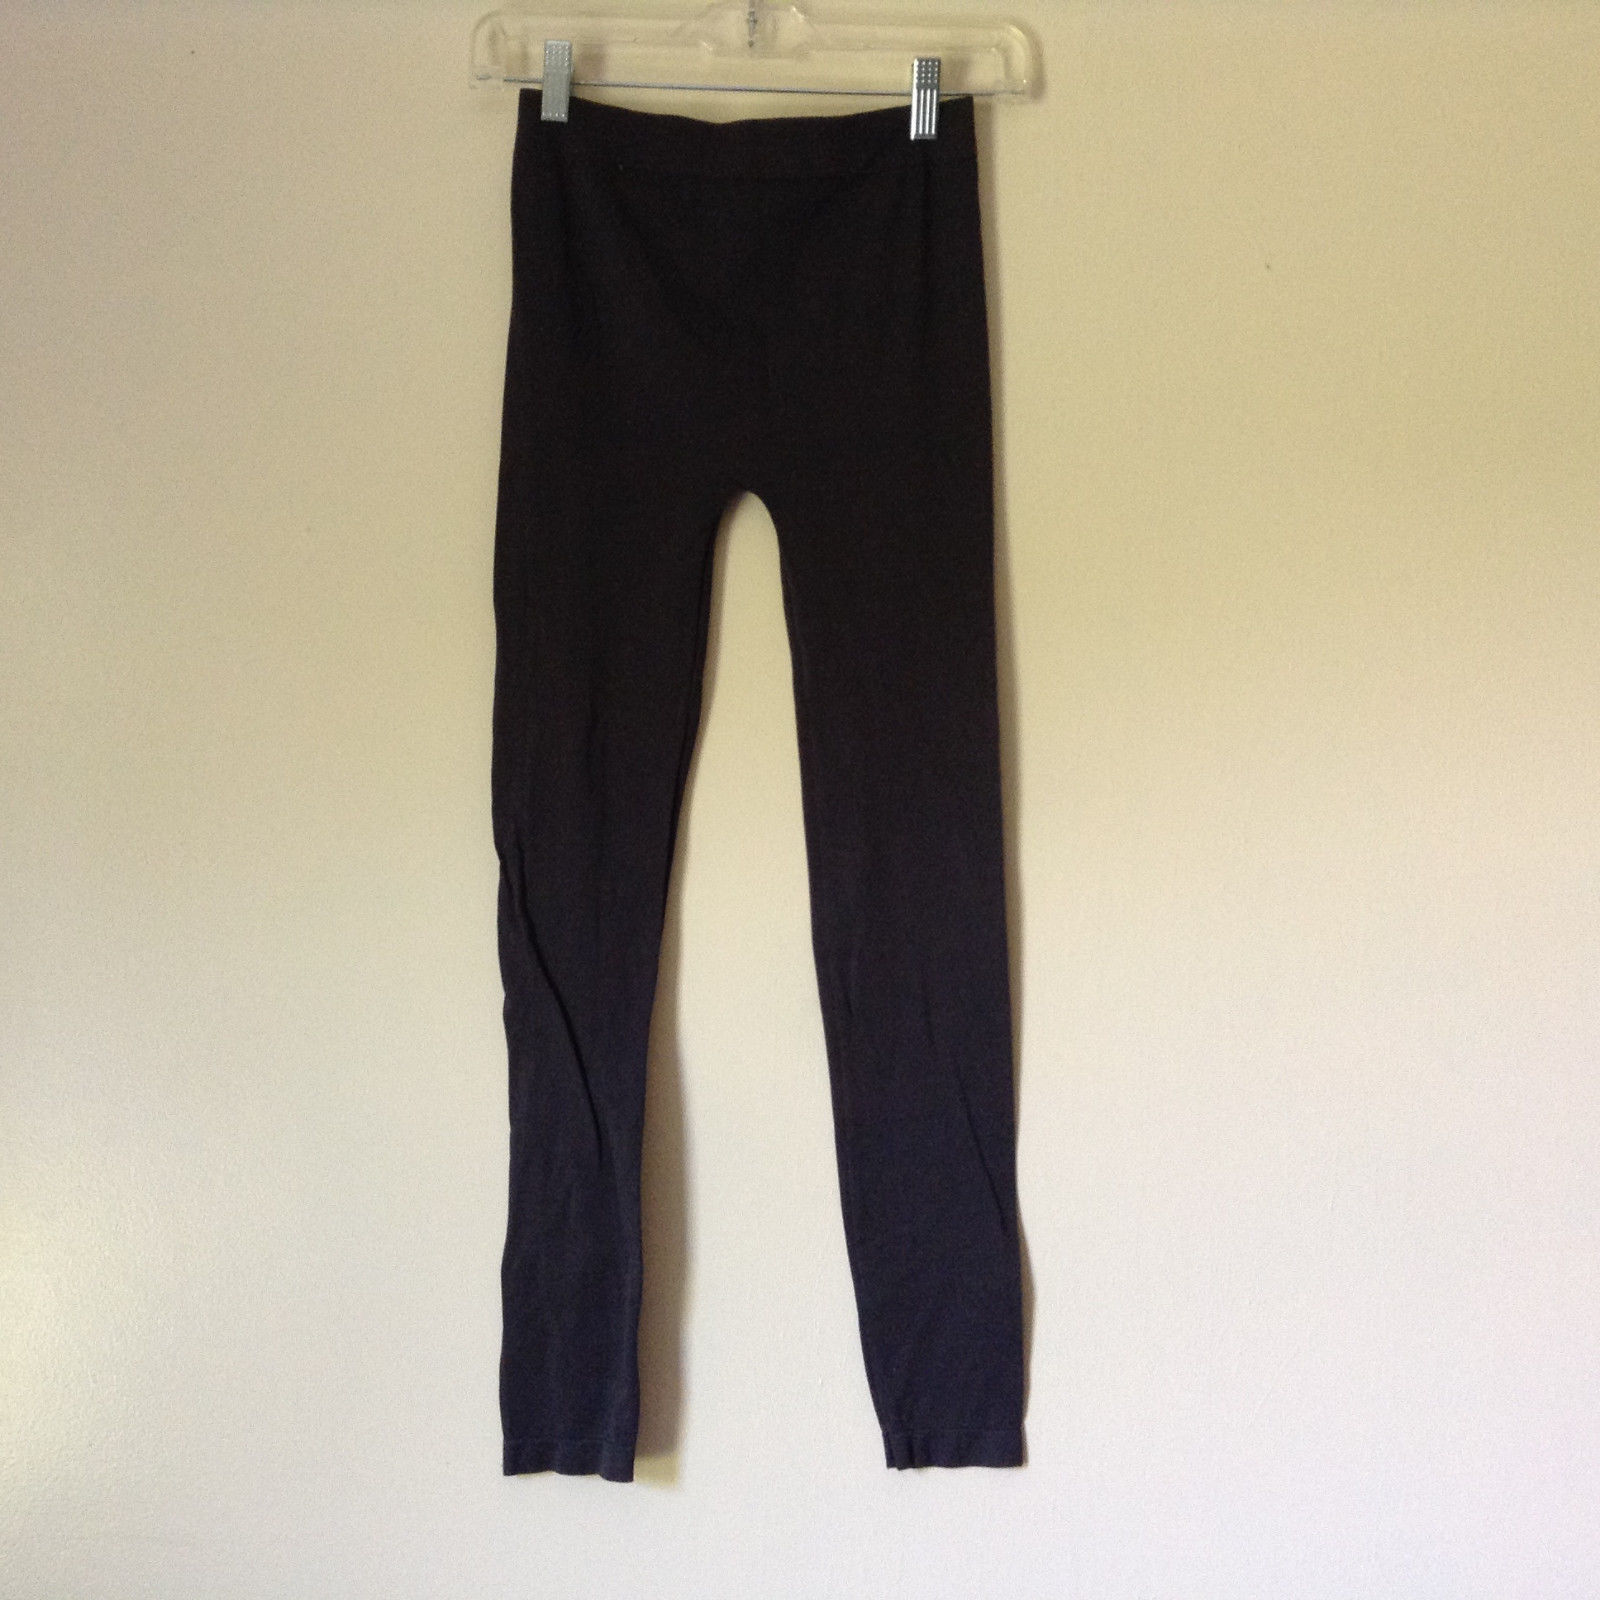 Dark Blue Gray Leggings by Forever 21 Size Small Medium